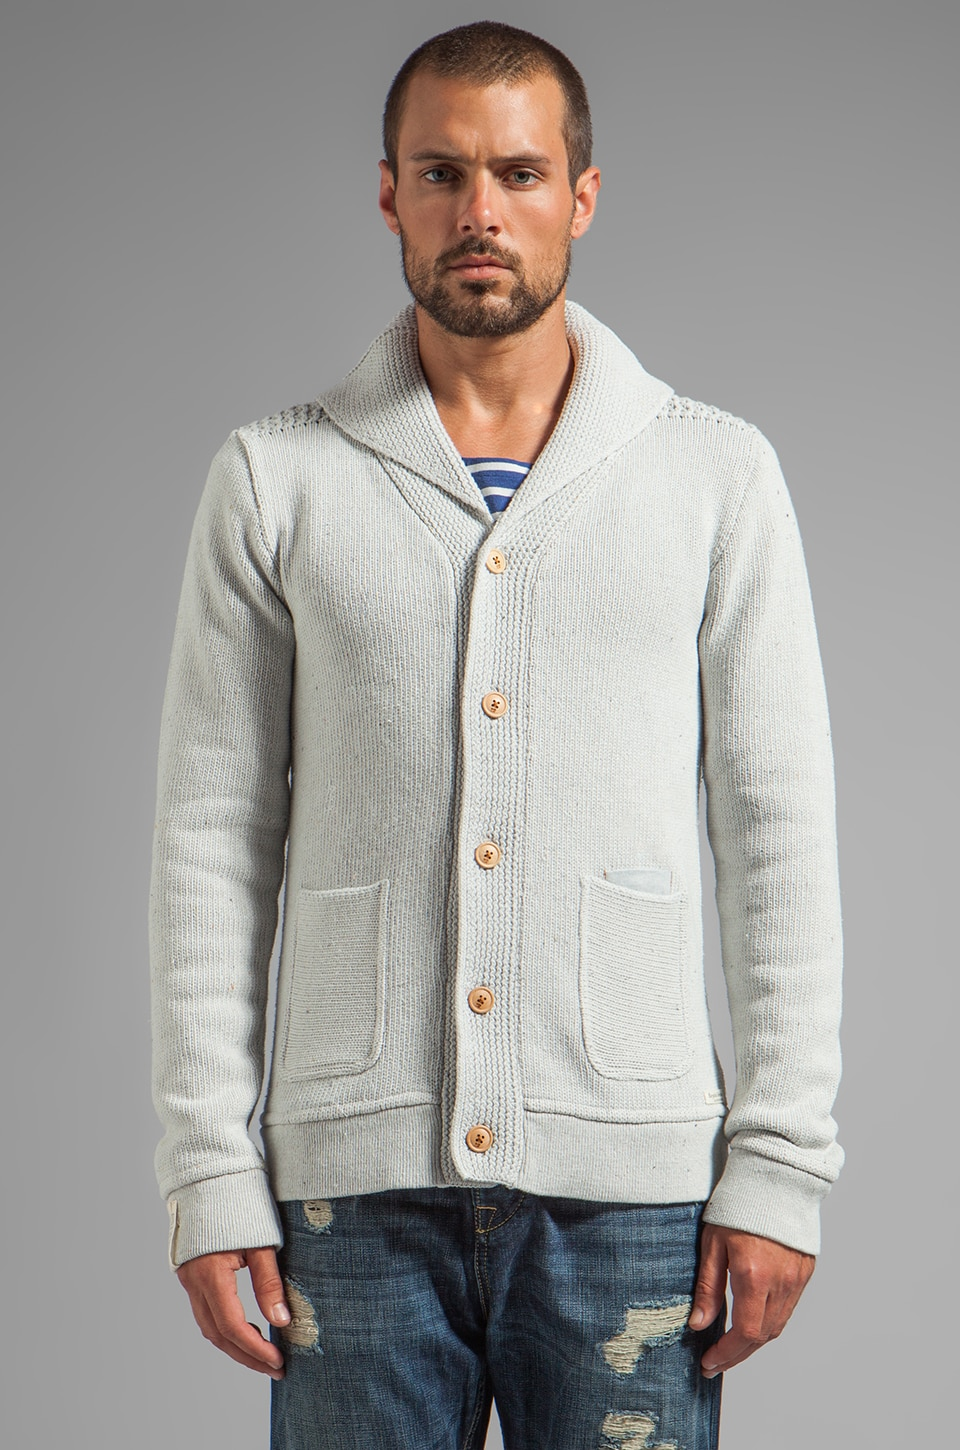 Scotch & Soda Recycled Denim Cardigan in Blue Wash